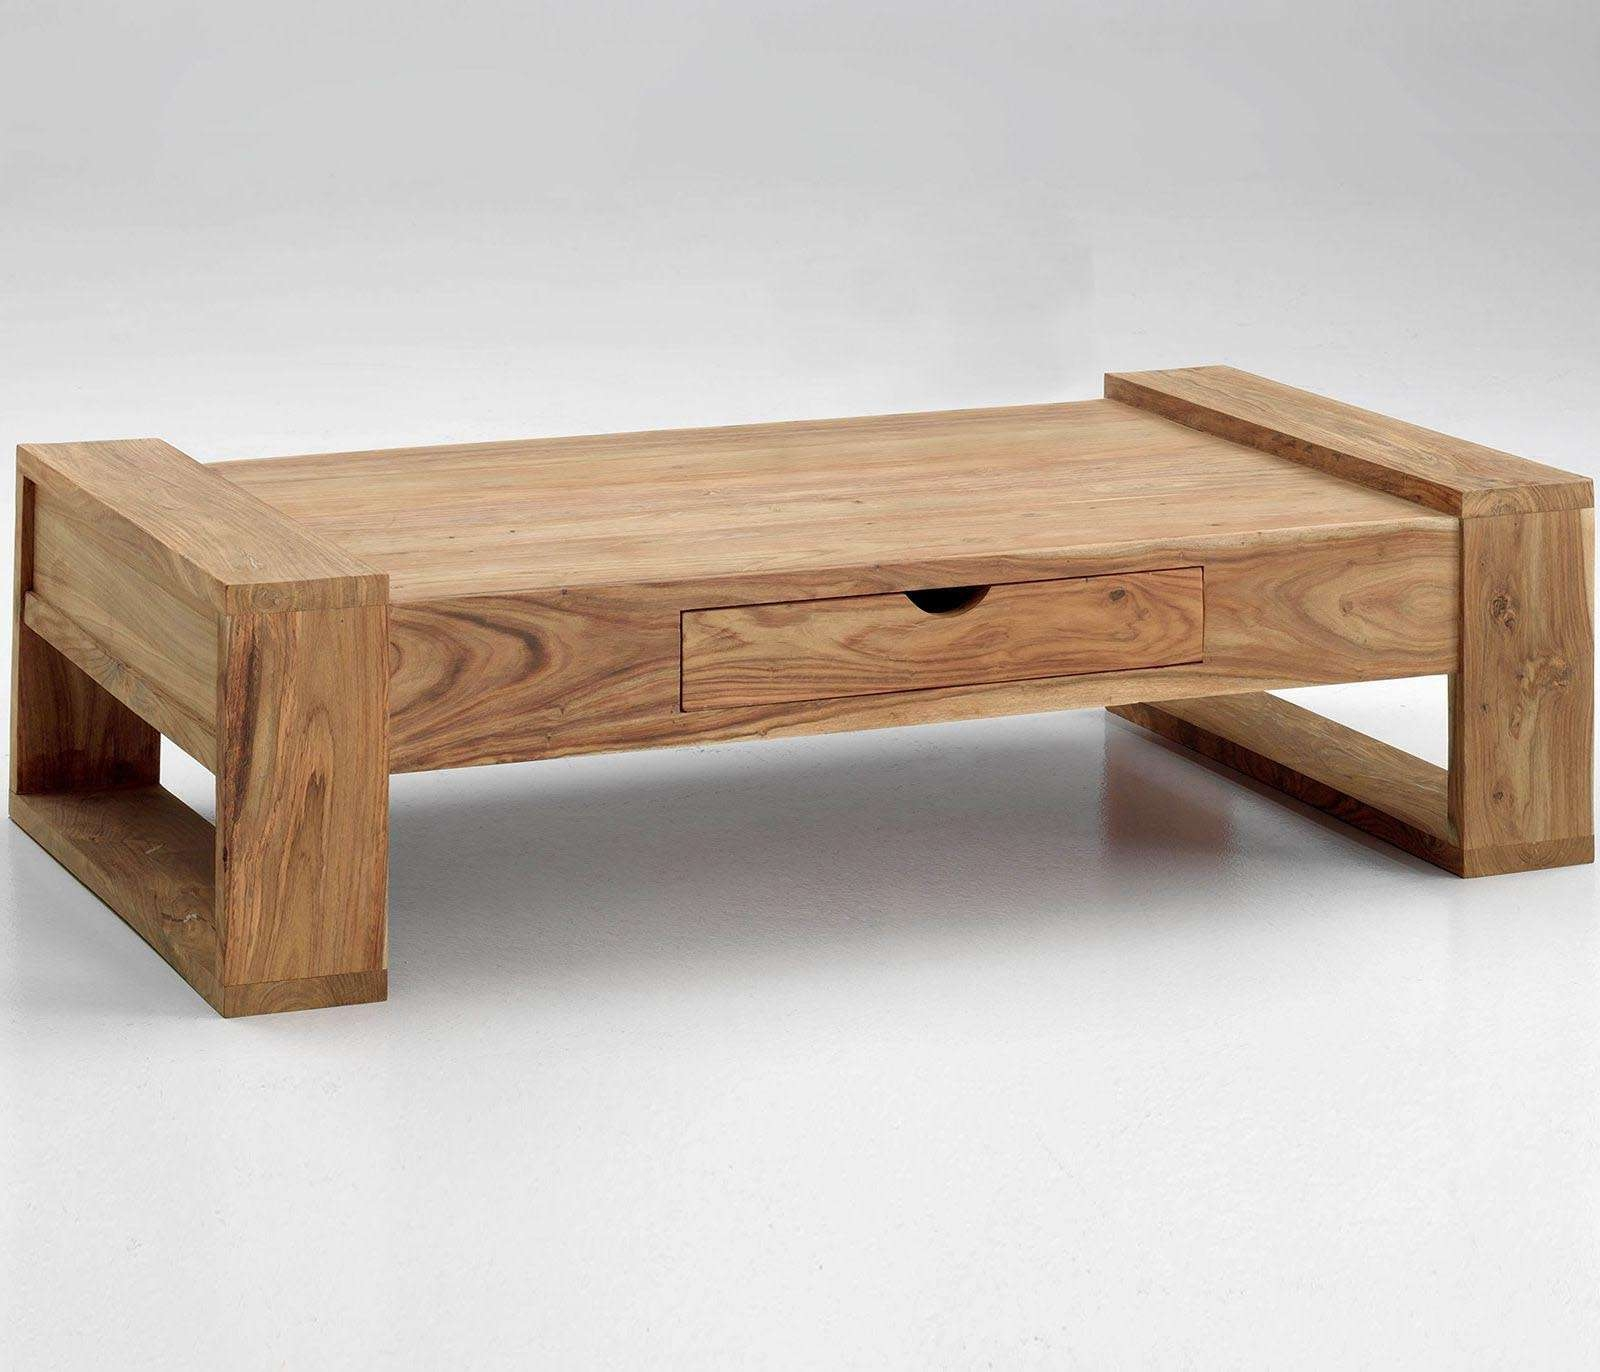 Coffee Table Design Ideas Throughout Best And Newest Low Wood Coffee Tables (View 7 of 20)